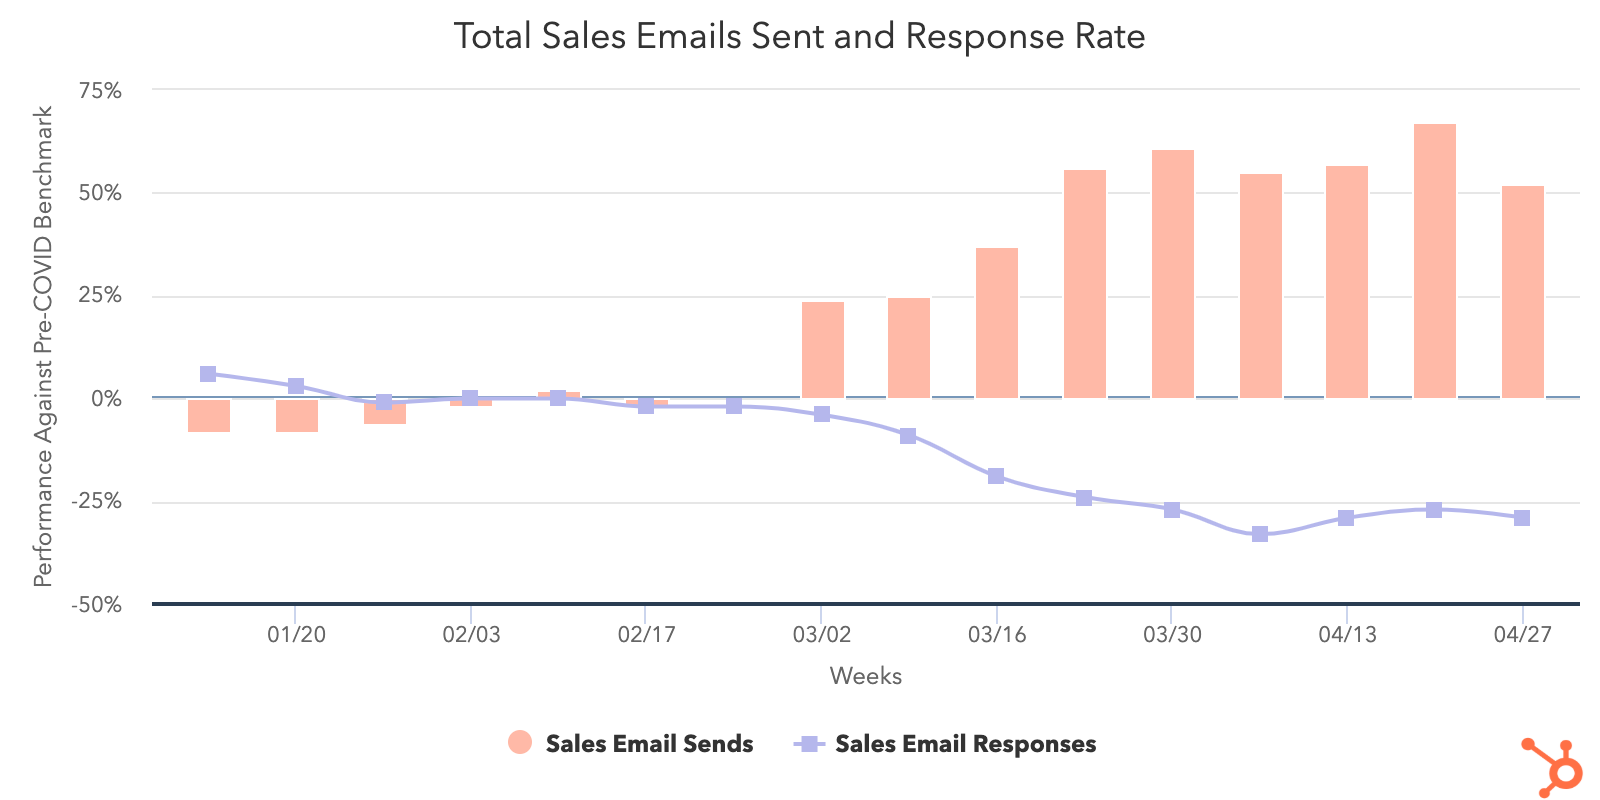 Sales-email-sent-and-response-rate